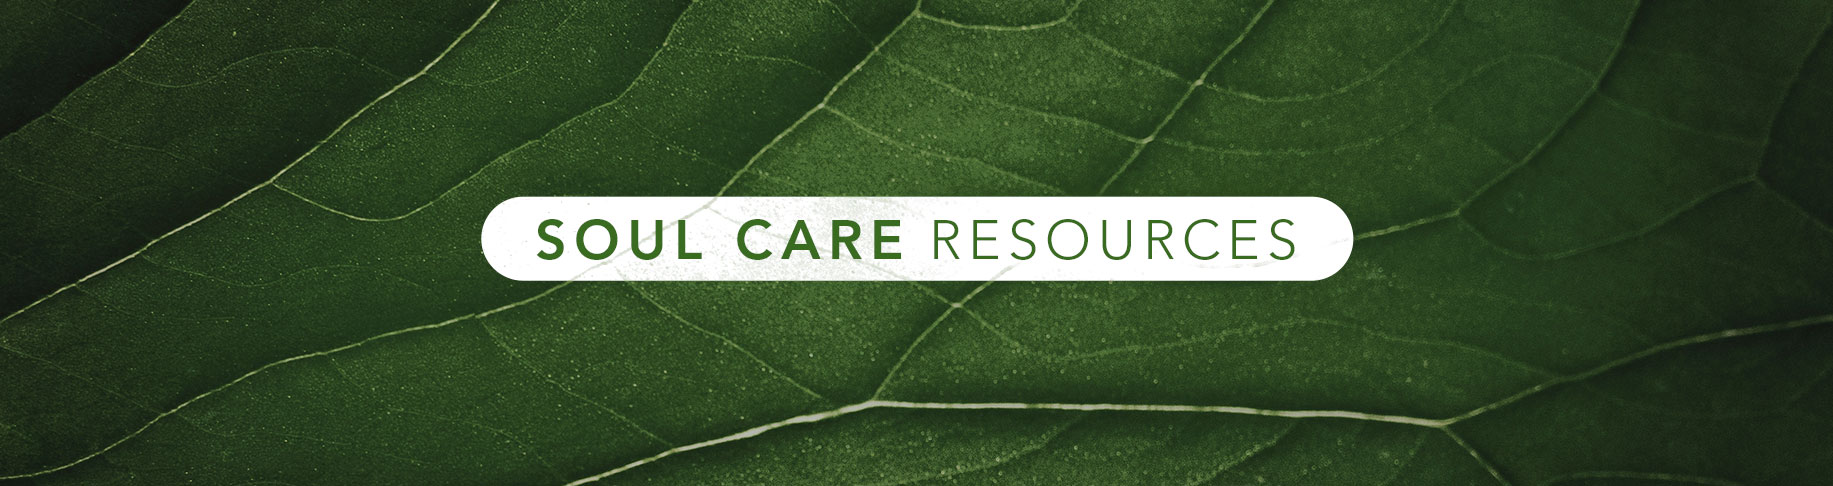 Soul Care Resources